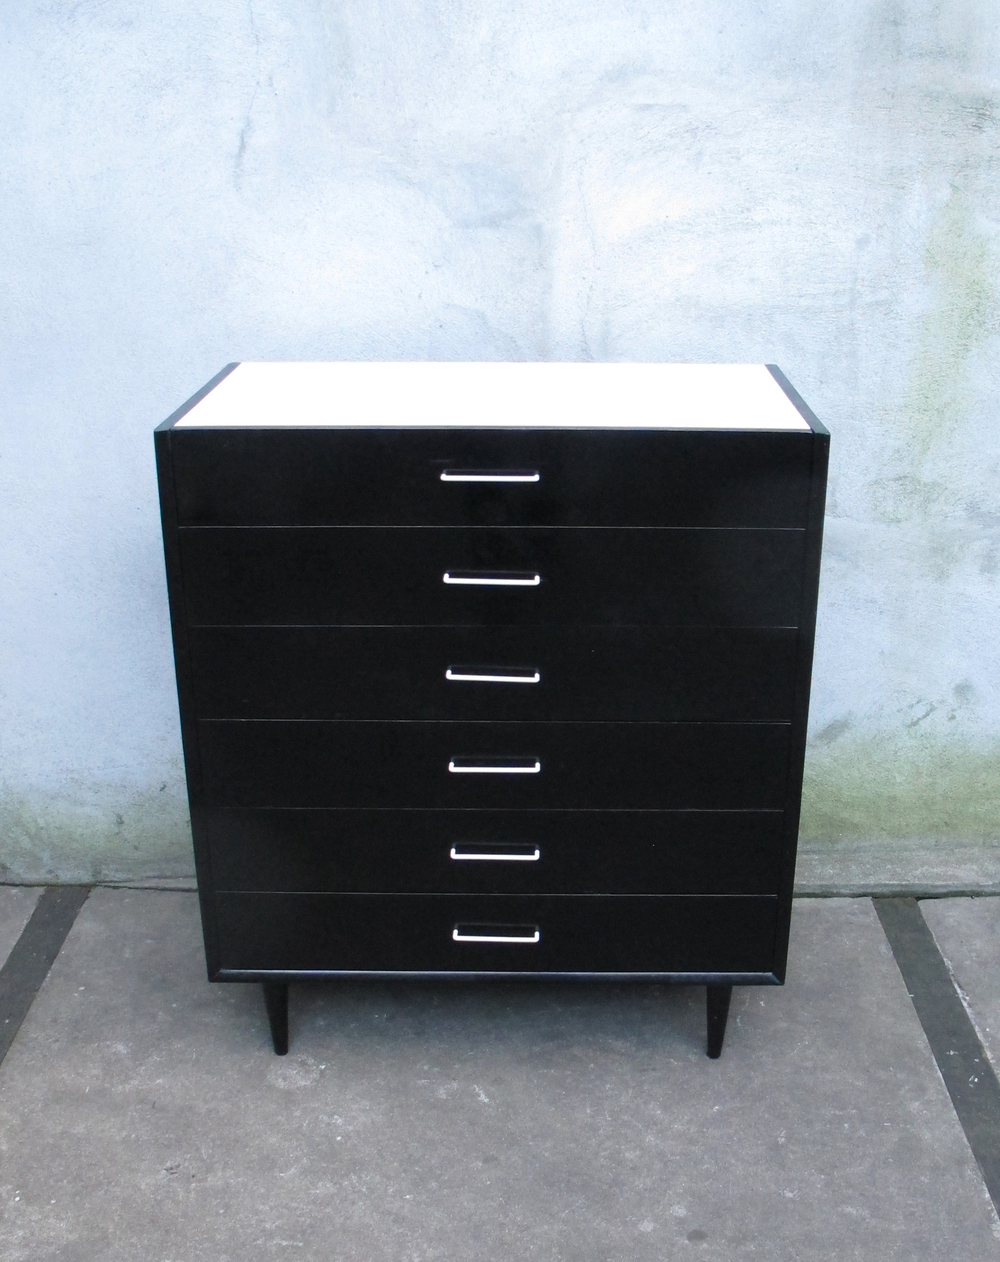 MID CENTURY BLACK & WHITE TALL DRESSER BY AMERICAN OF MARTINSVILLE